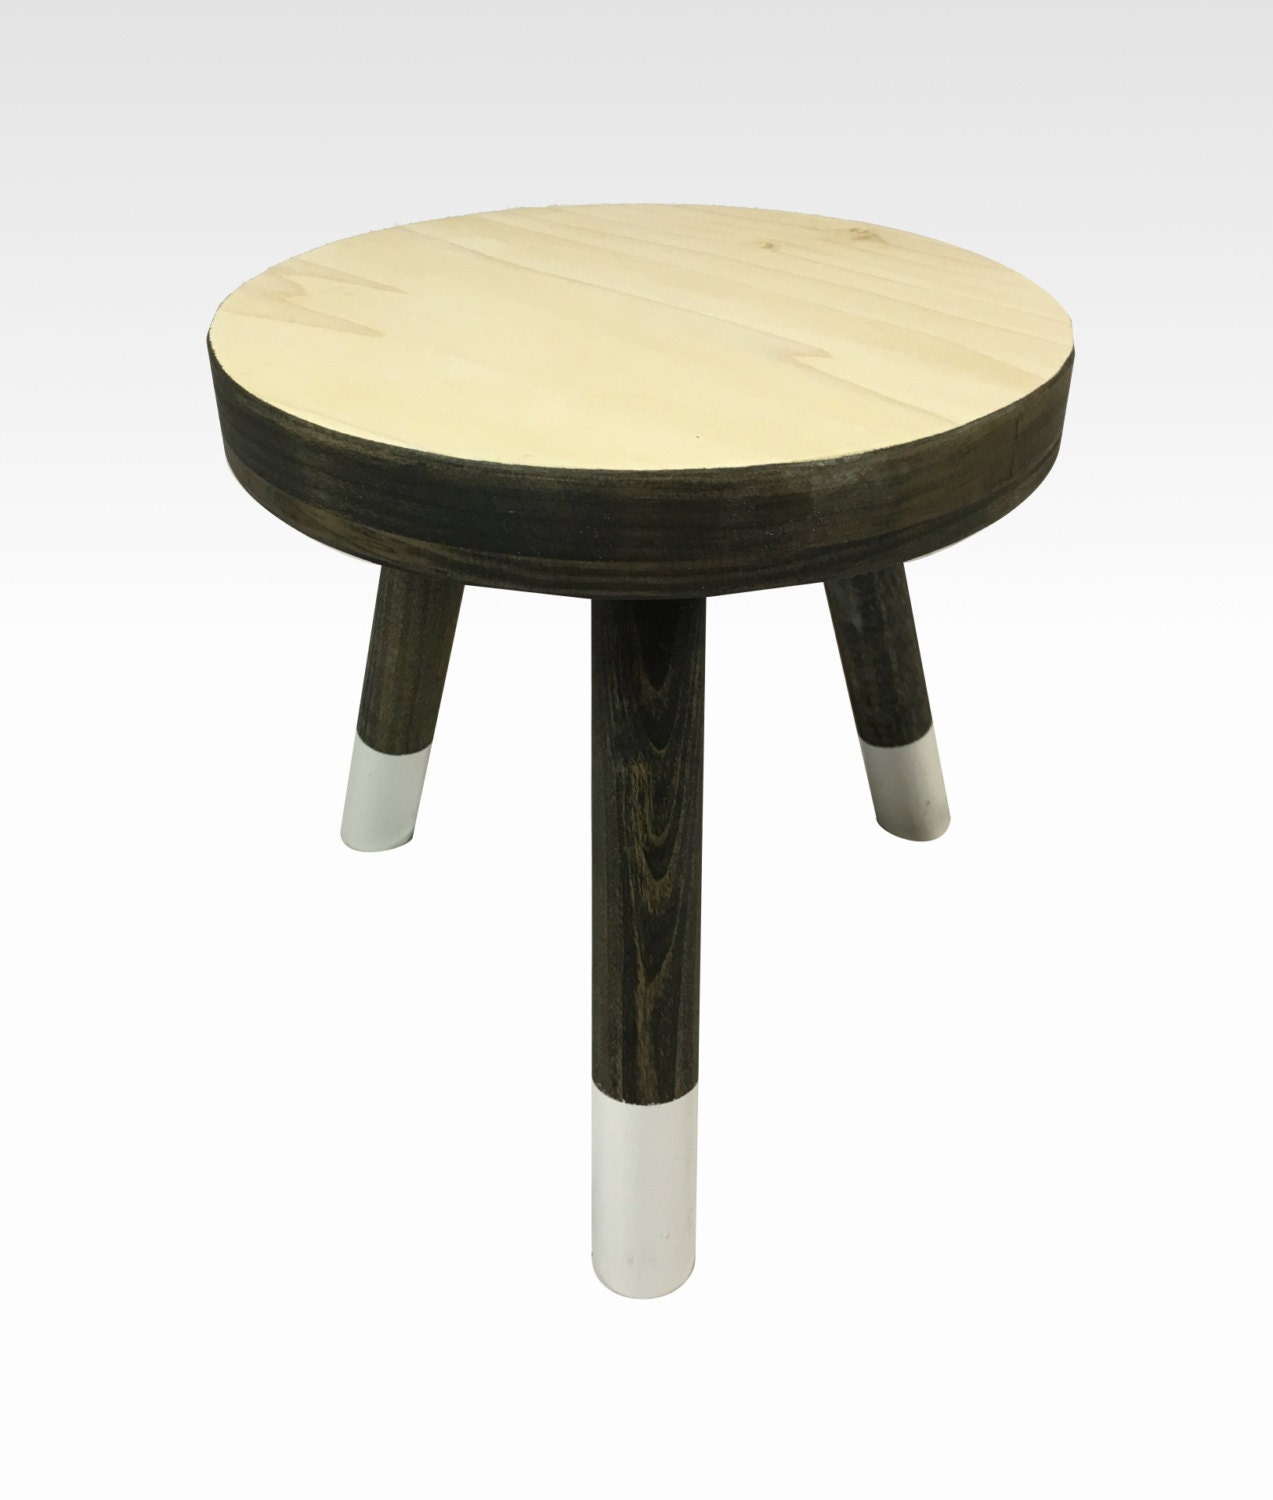 Small Wood Three Legged Stool Modern Plant Stand In Charcoal